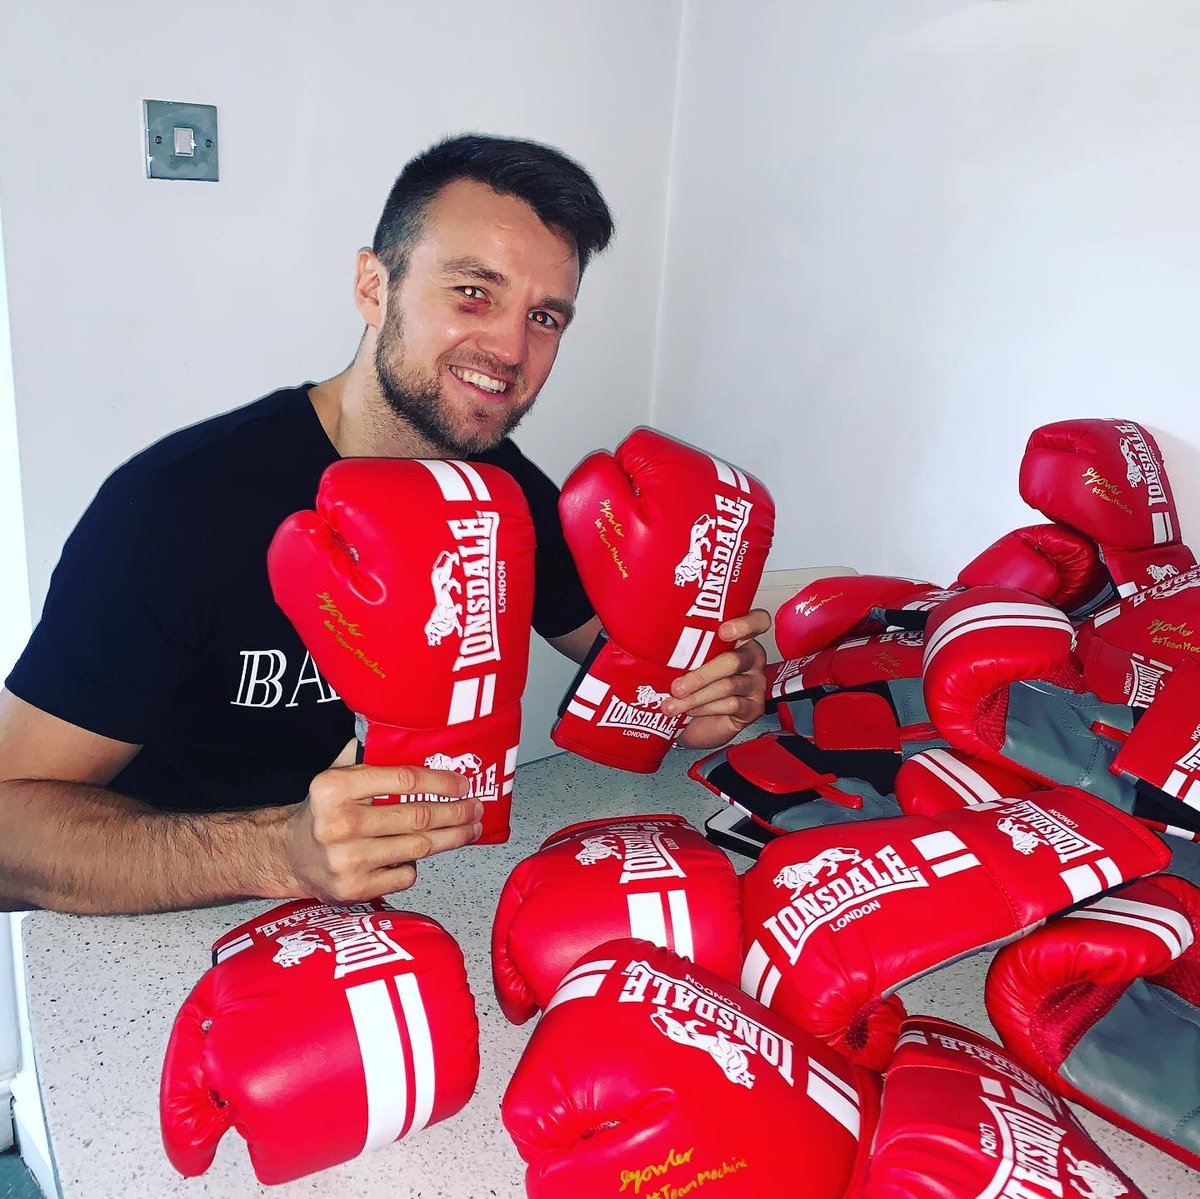 COMPETITION - Loads my followers always asking for signed gloves so I went and bought 20 of them to give way,  to enter RETWEET an COMMENT below or TAG a friend ,  FOLLOW @supreme_cbd and LIKE this picture,  you must be following @supreme_cbd to be eligible to win 👊🏻 #GoodLuck ☘️ https://t.co/e4lpcXruLx